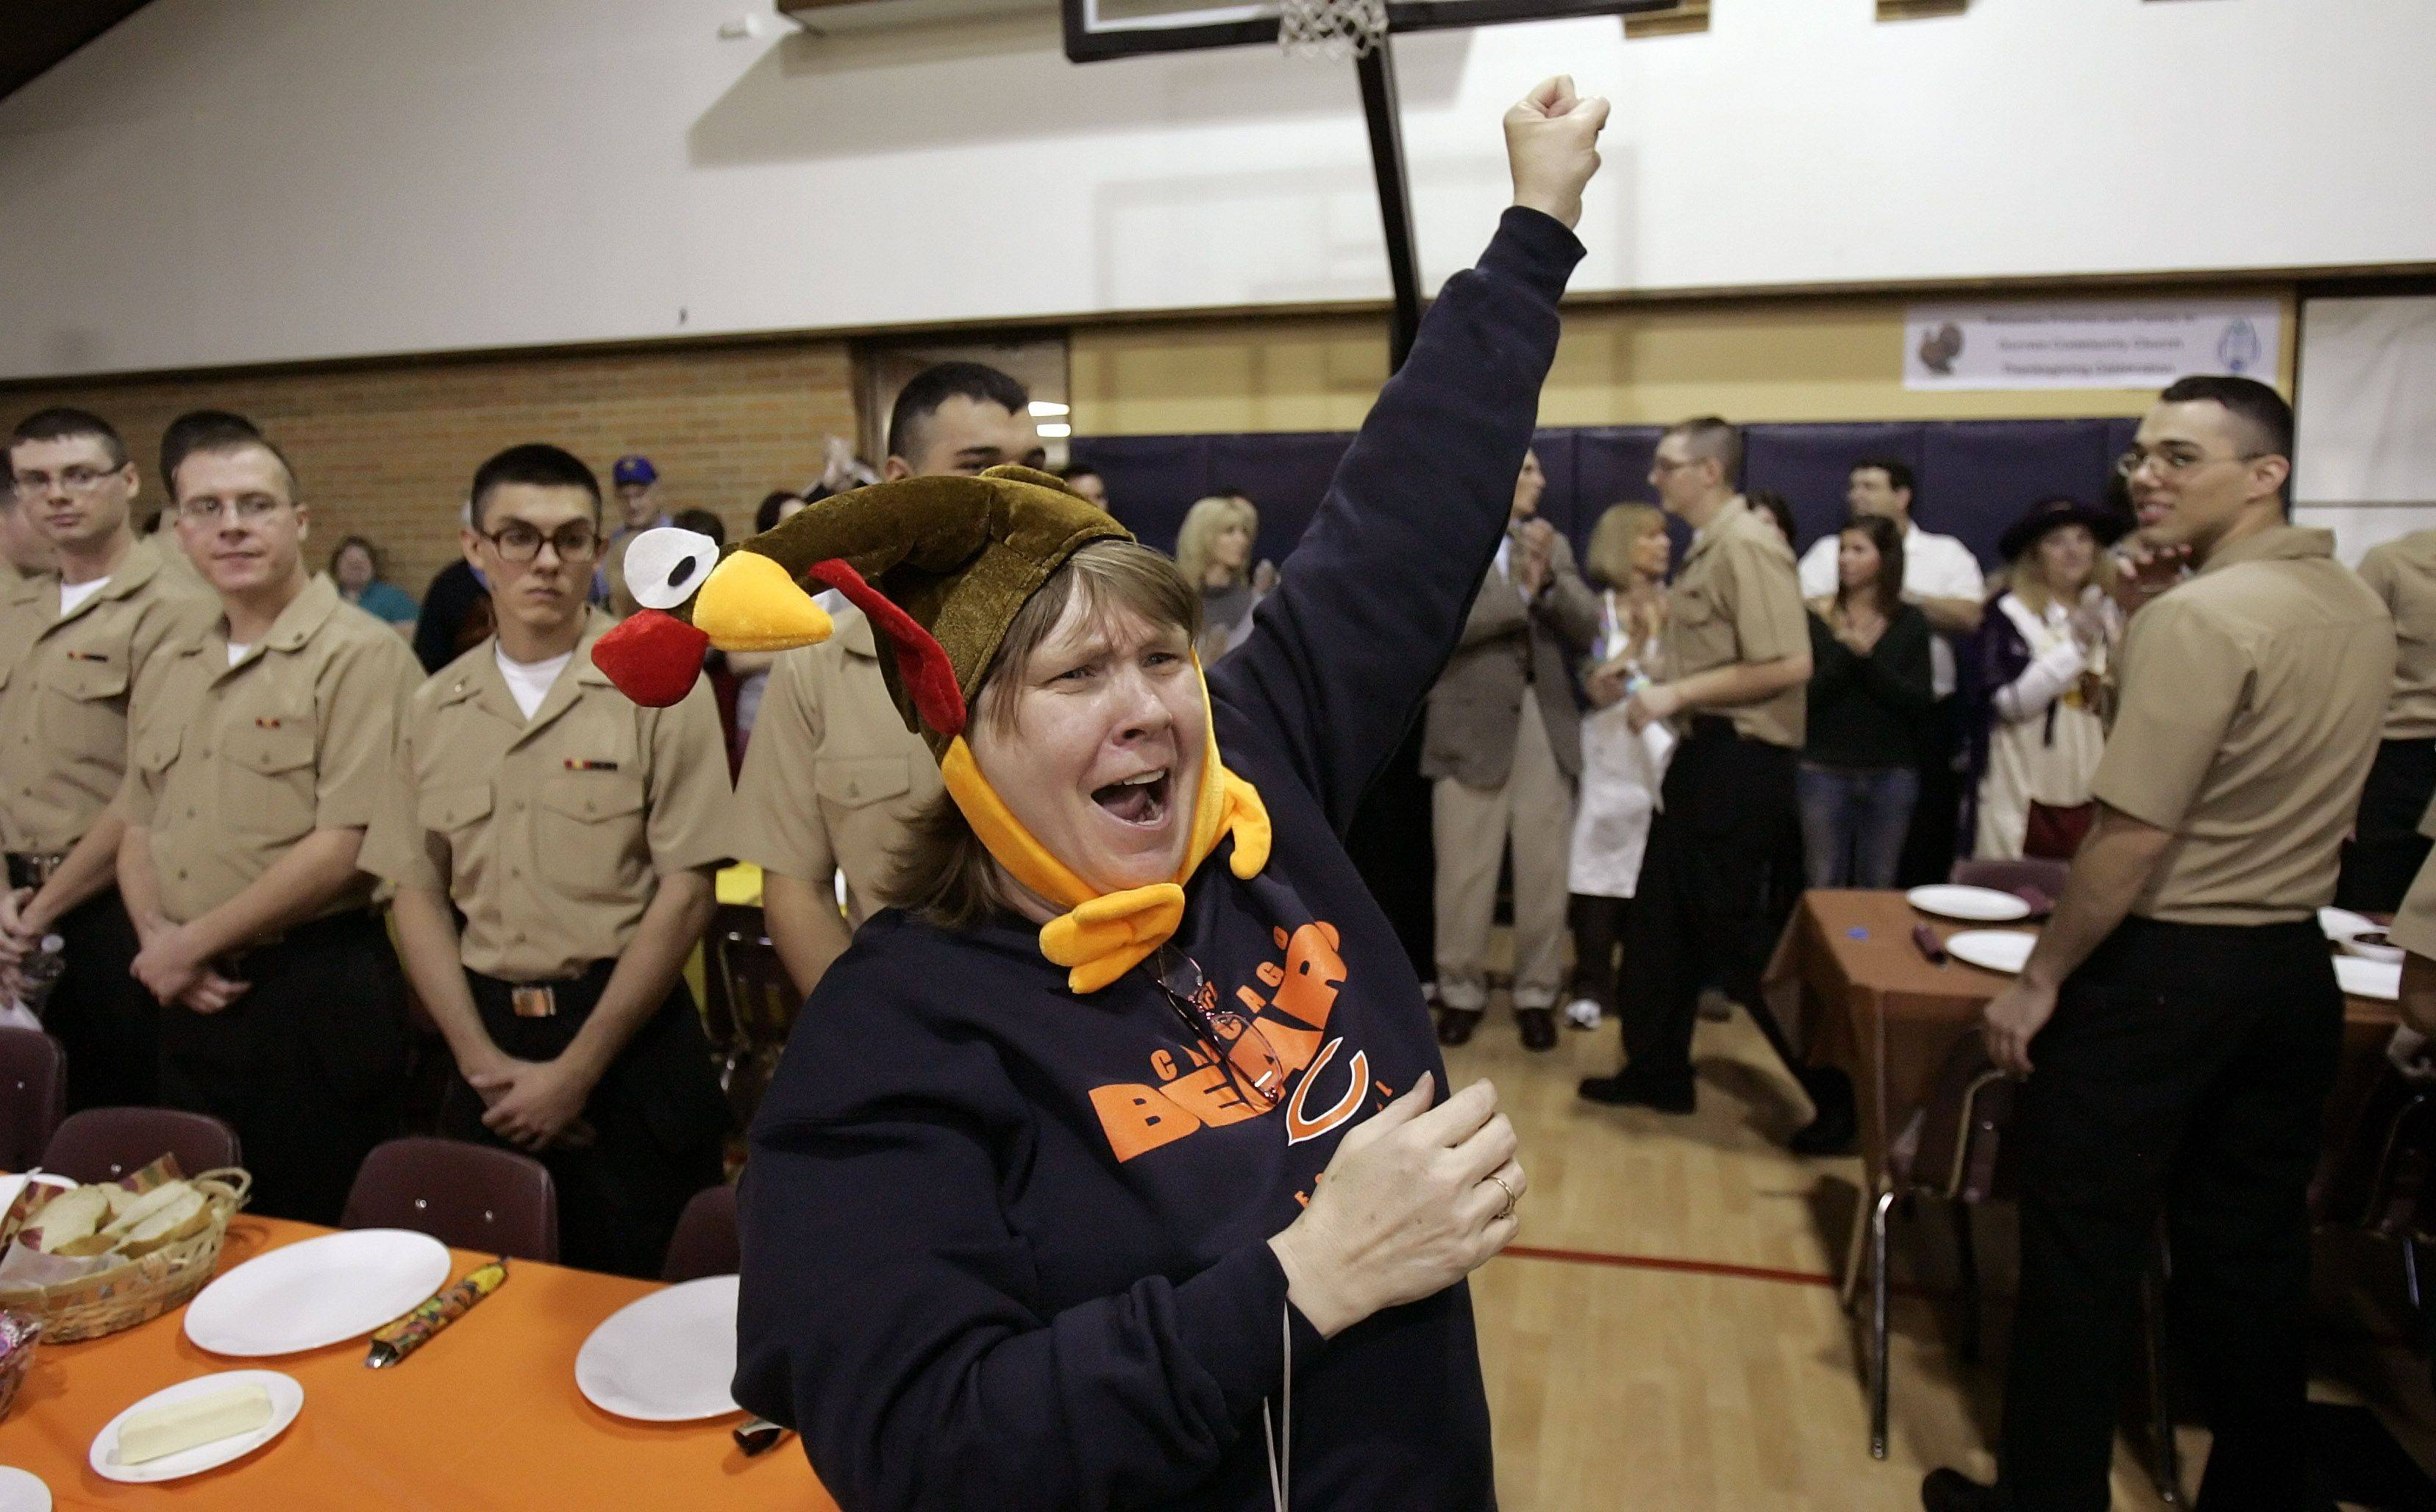 Gurnee Community Church member Debbie Krueger of Gurnee and members of the congregation cheer as 193 sailors from Recruit Training Command of Great Lakes make their way to the dining room for a Thanksgiving feast with all the trimmings.